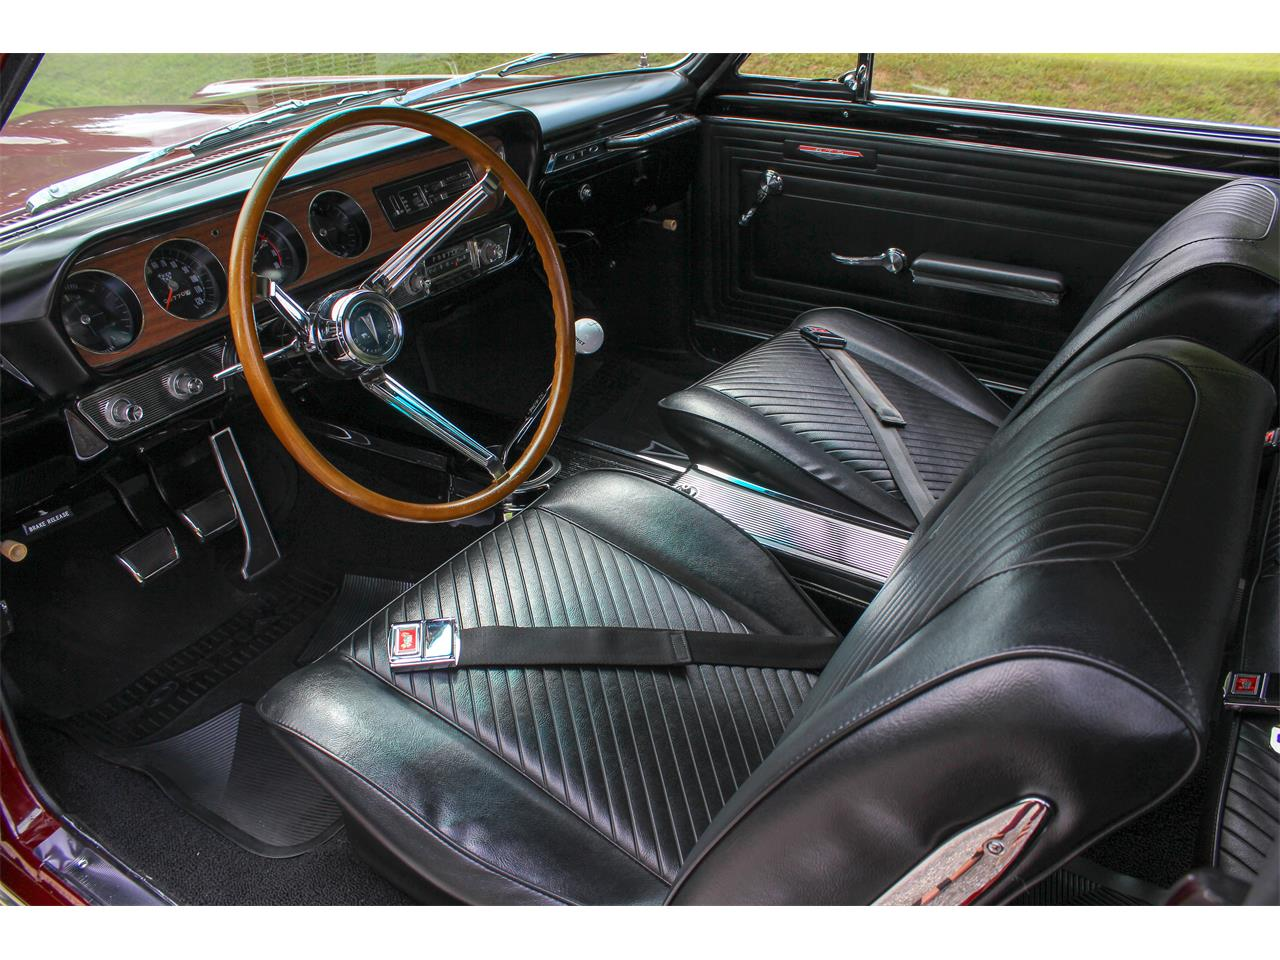 Large Picture of Classic '65 Pontiac GTO located in Crofton Maryland - $68,000.00 Offered by a Private Seller - R2KD